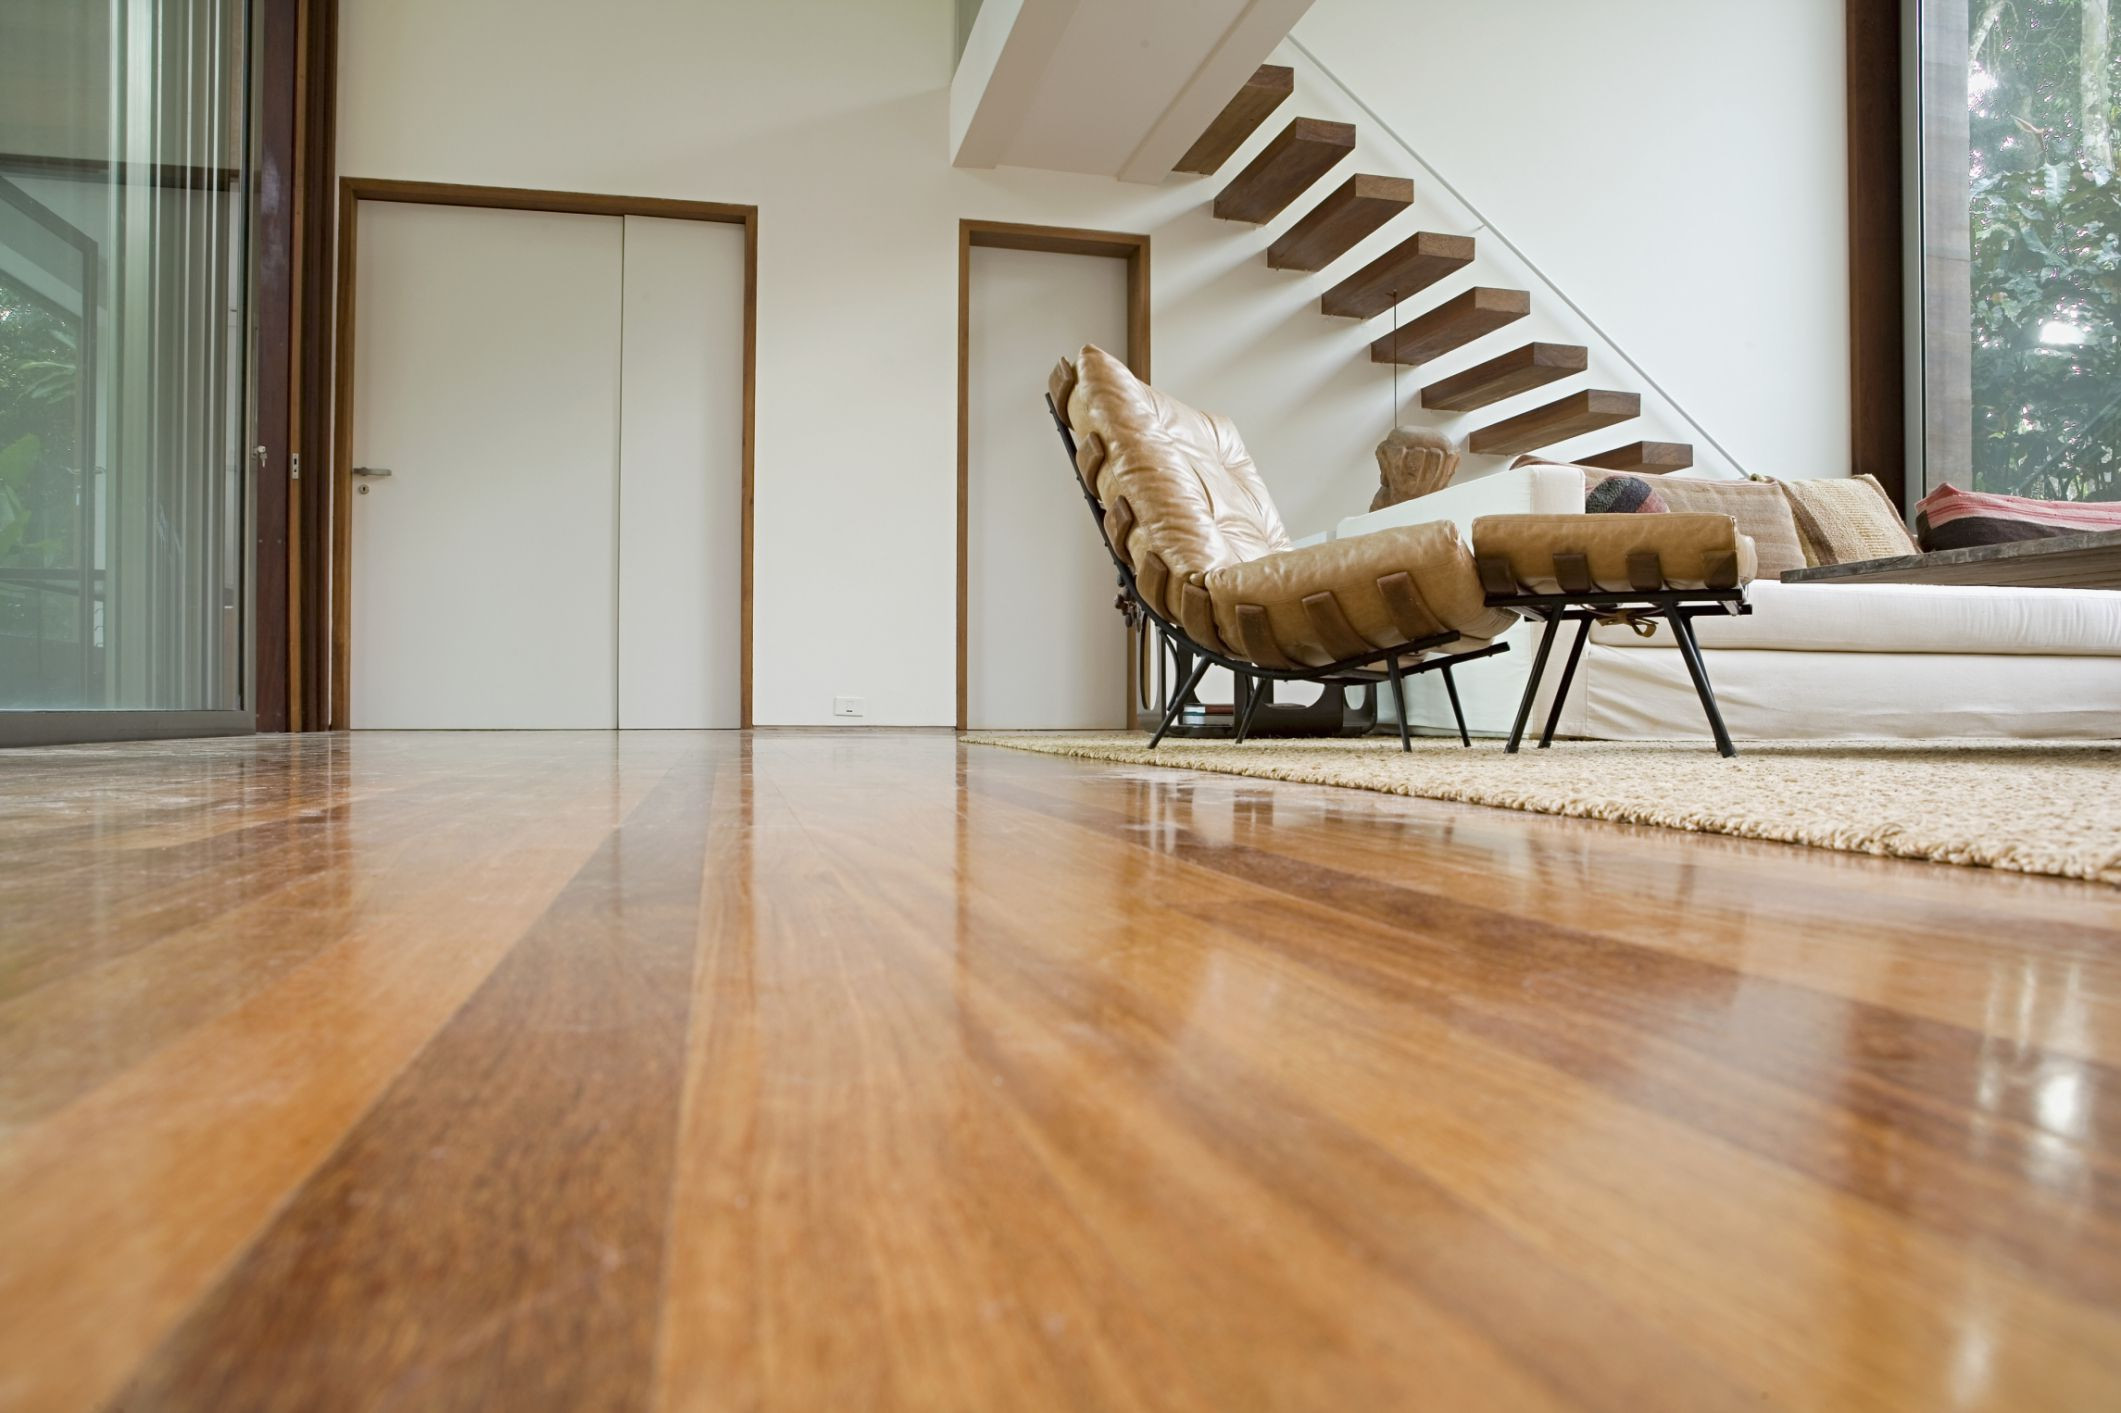 replacing hardwood floor boards cost of engineered wood flooring vs solid wood flooring intended for 200571260 001 highres 56a49dec5f9b58b7d0d7dc1e